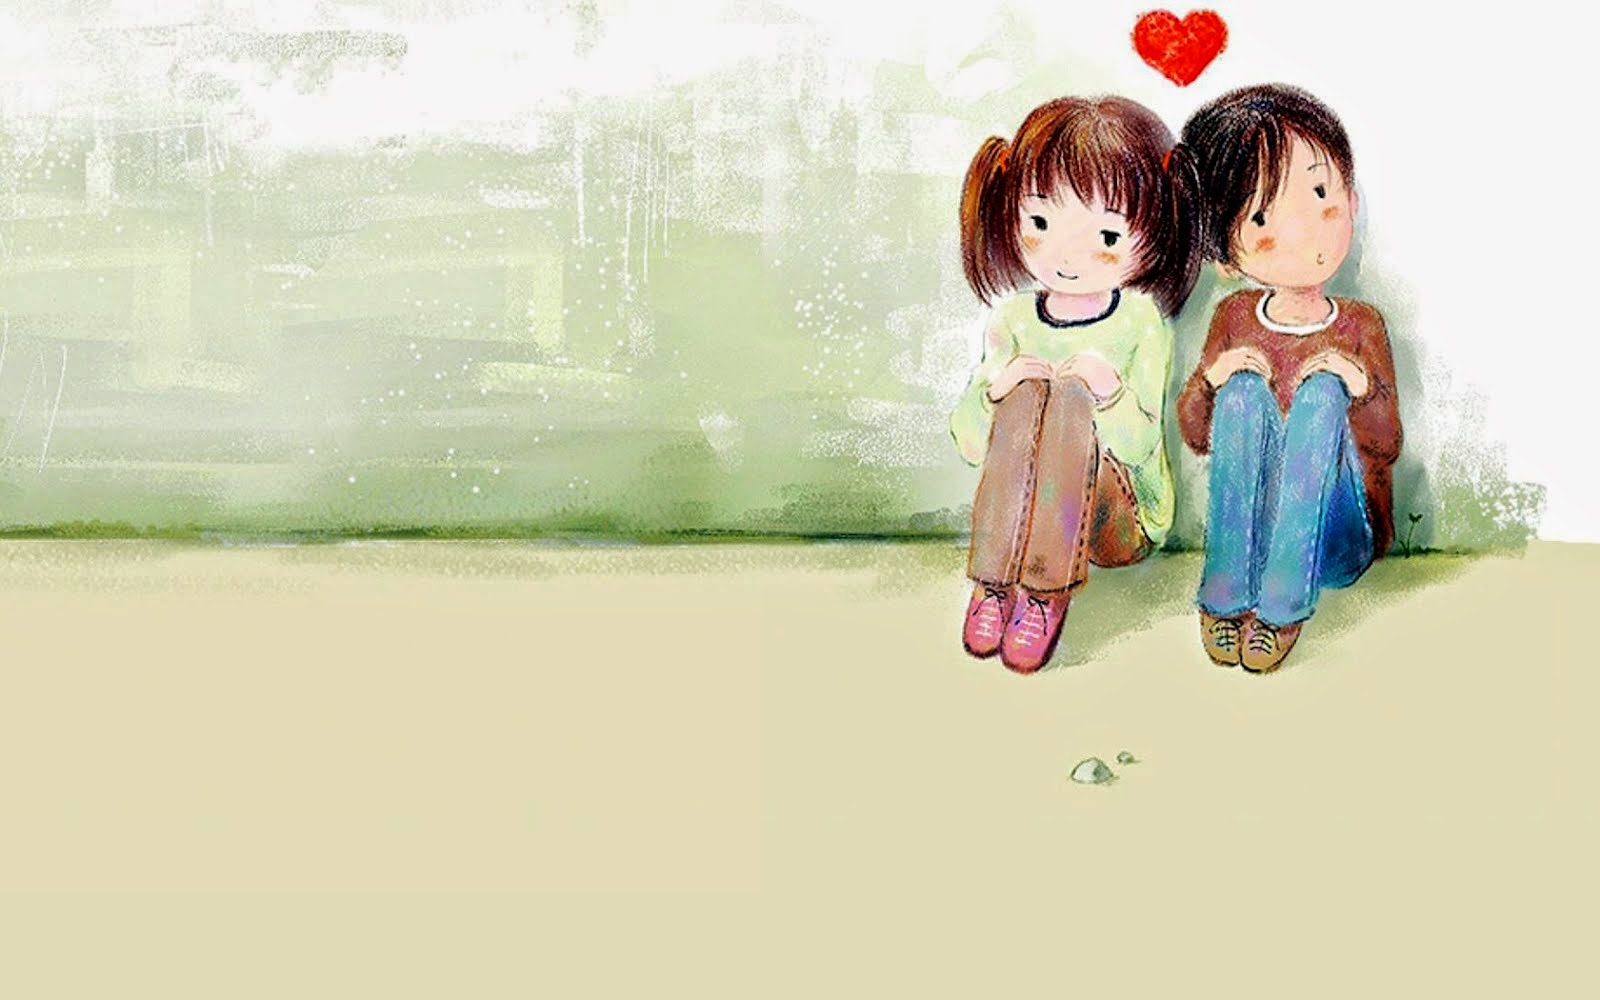 cute Love couple Hd Wallpaper For Mobile : cute Little cartoon couple In Love HD Wallpaper Best Love HD Wallpapers